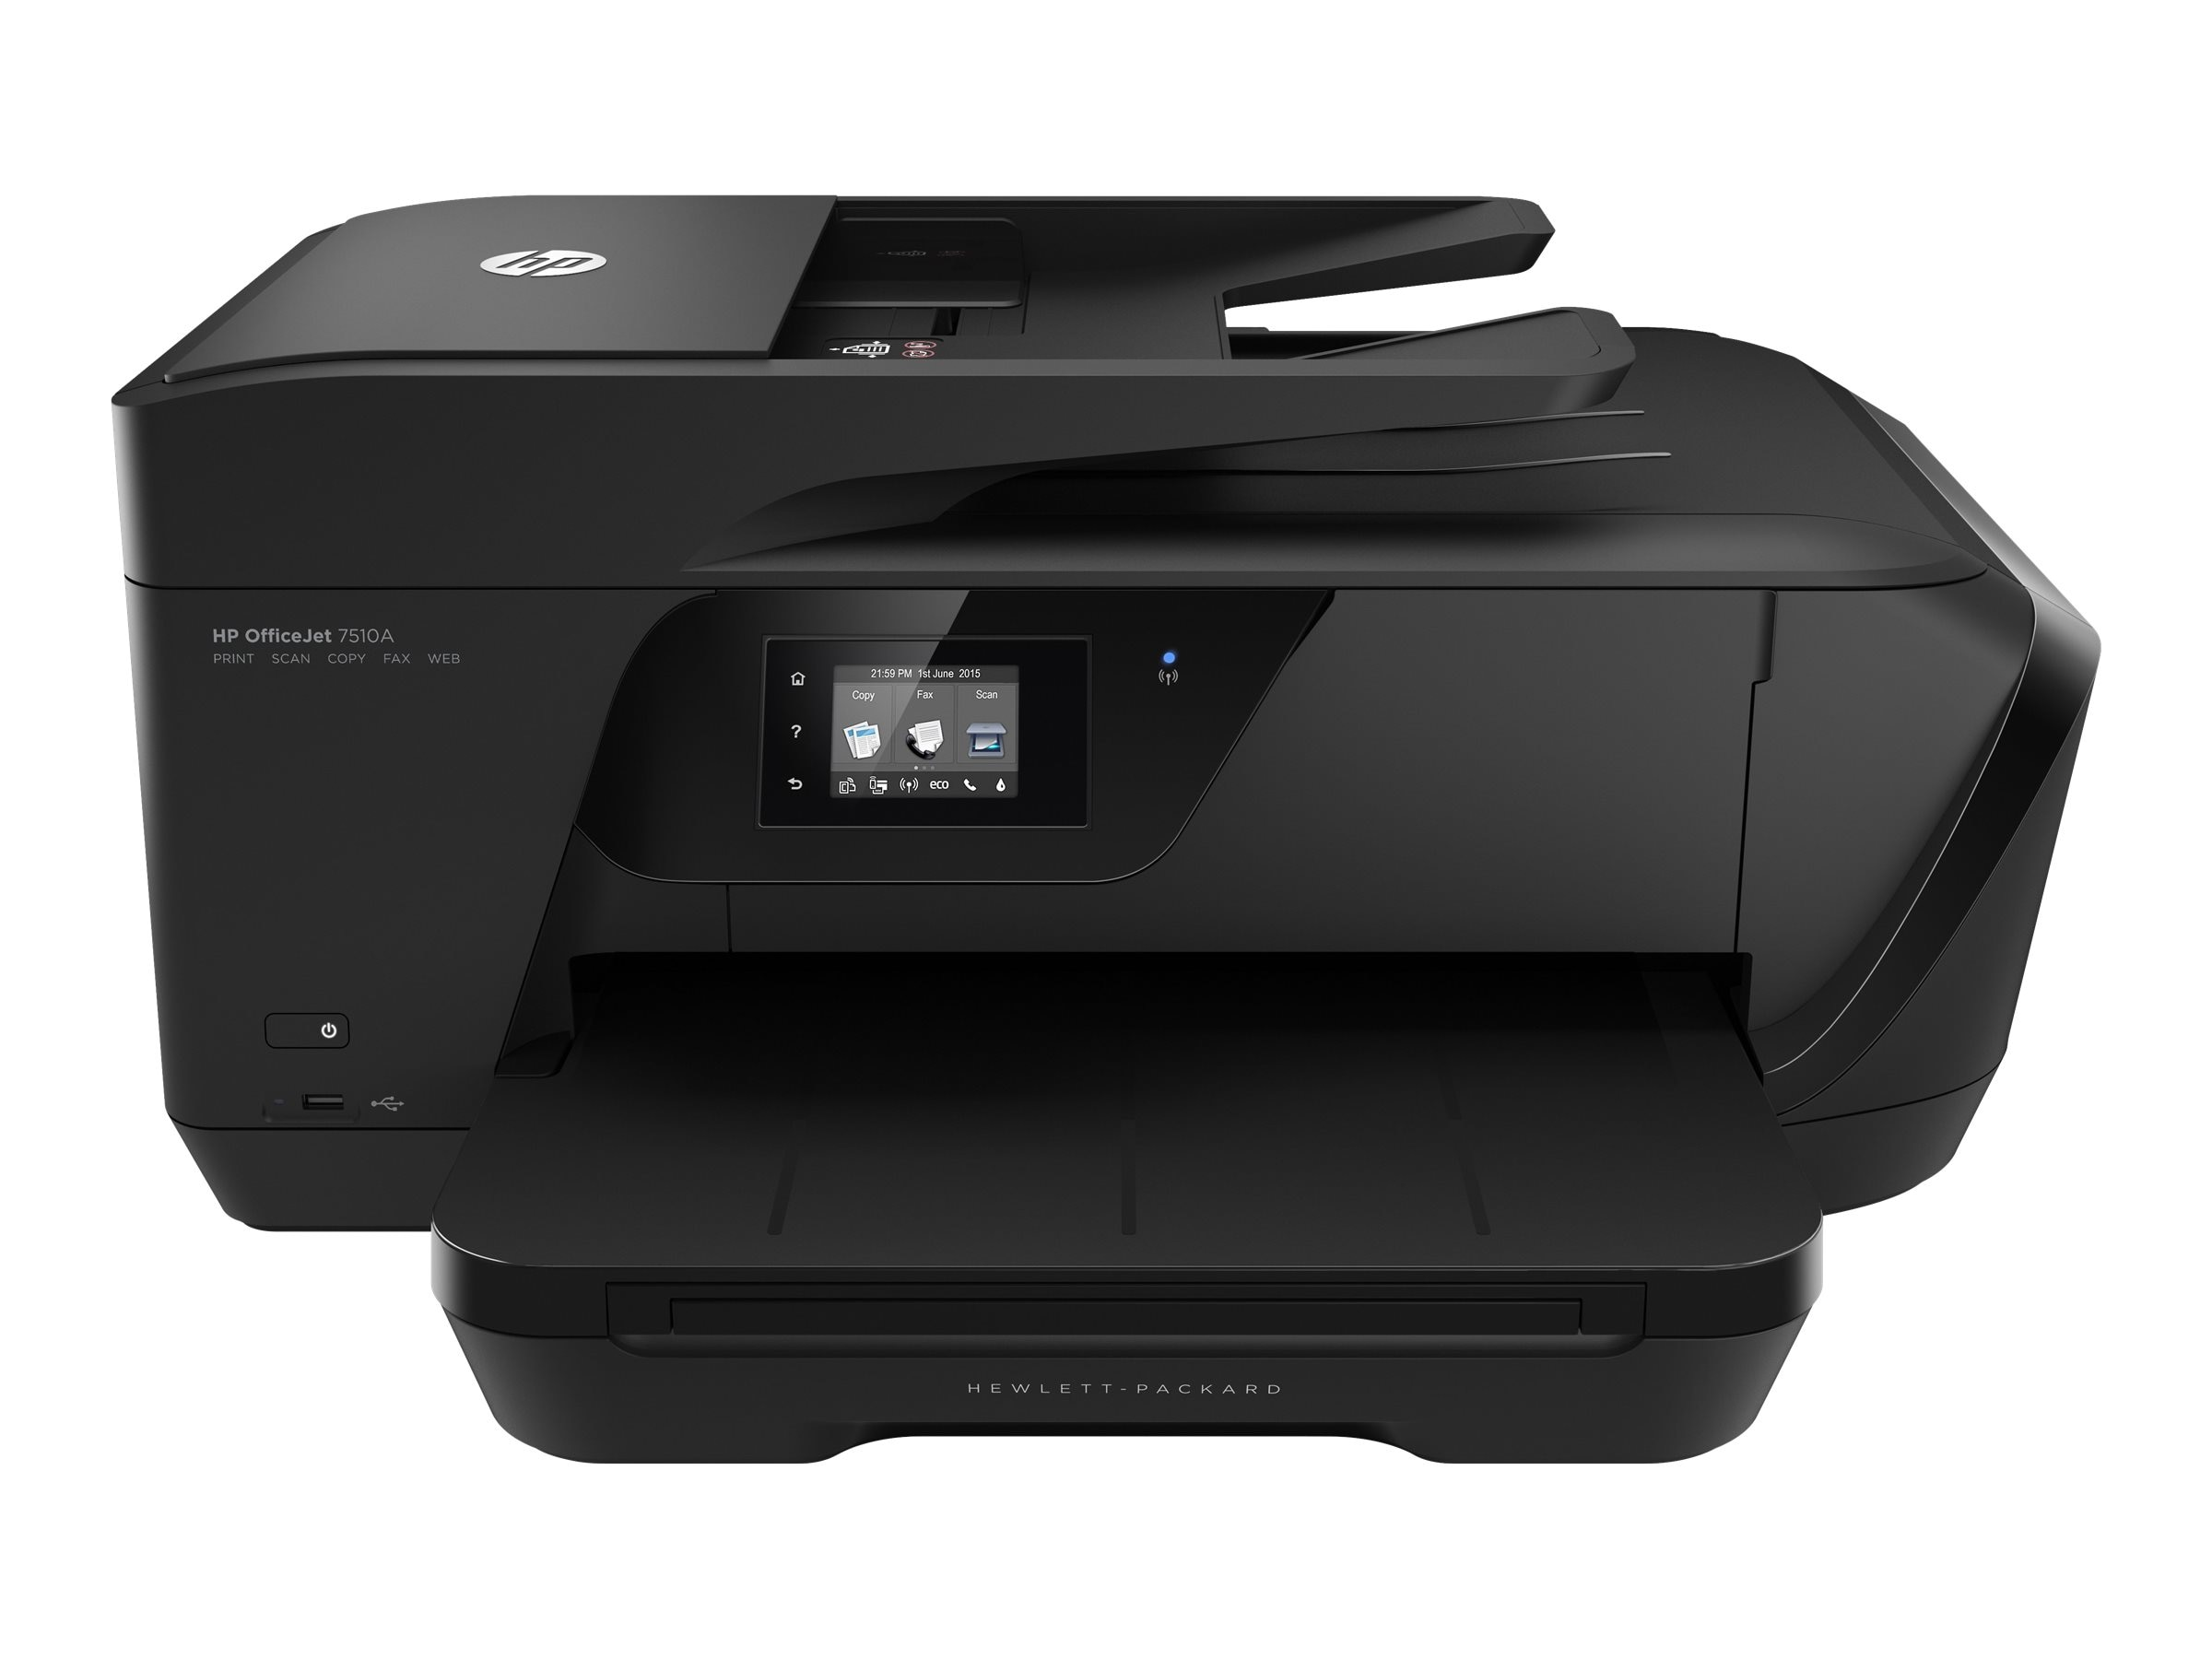 HP OfficeJet 7510 Wide Format All-in-One Printer, G3J47A#B1H